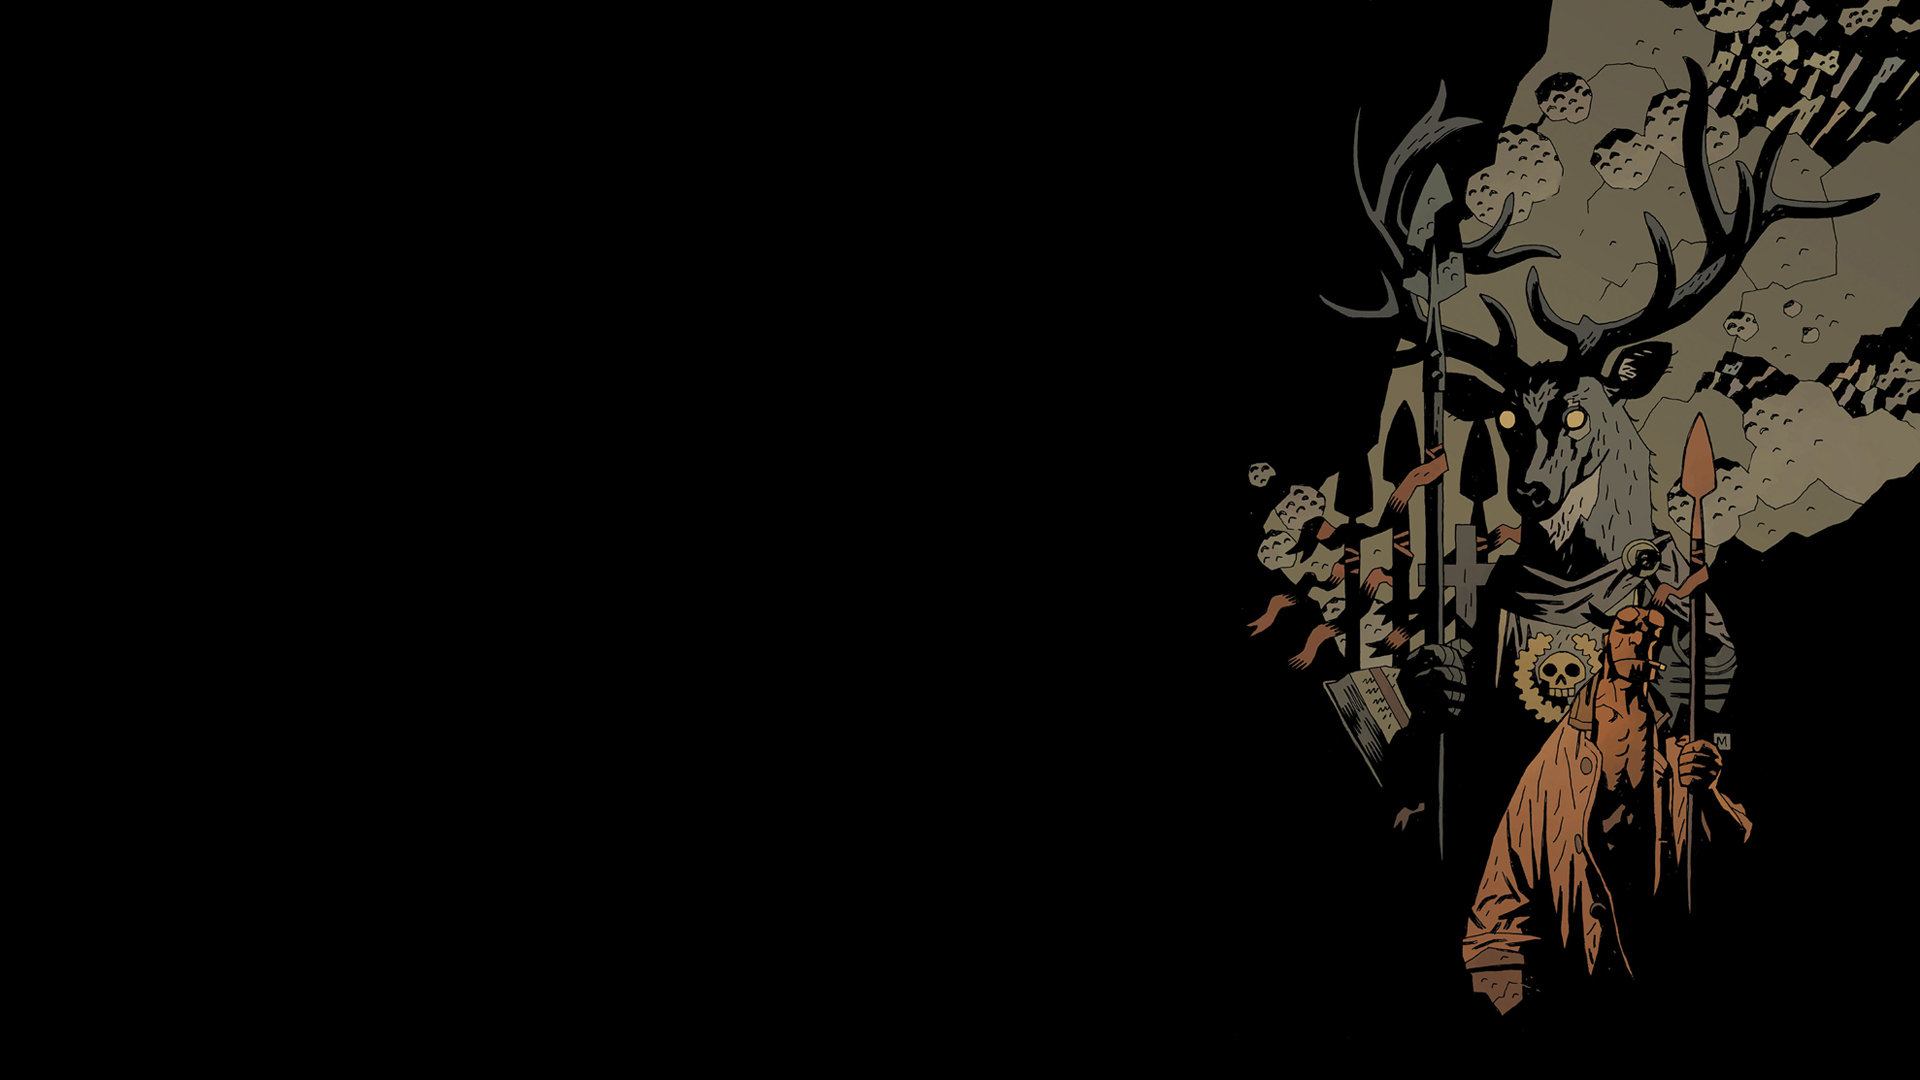 1 hellboy the wild hunt hd wallpapers backgrounds